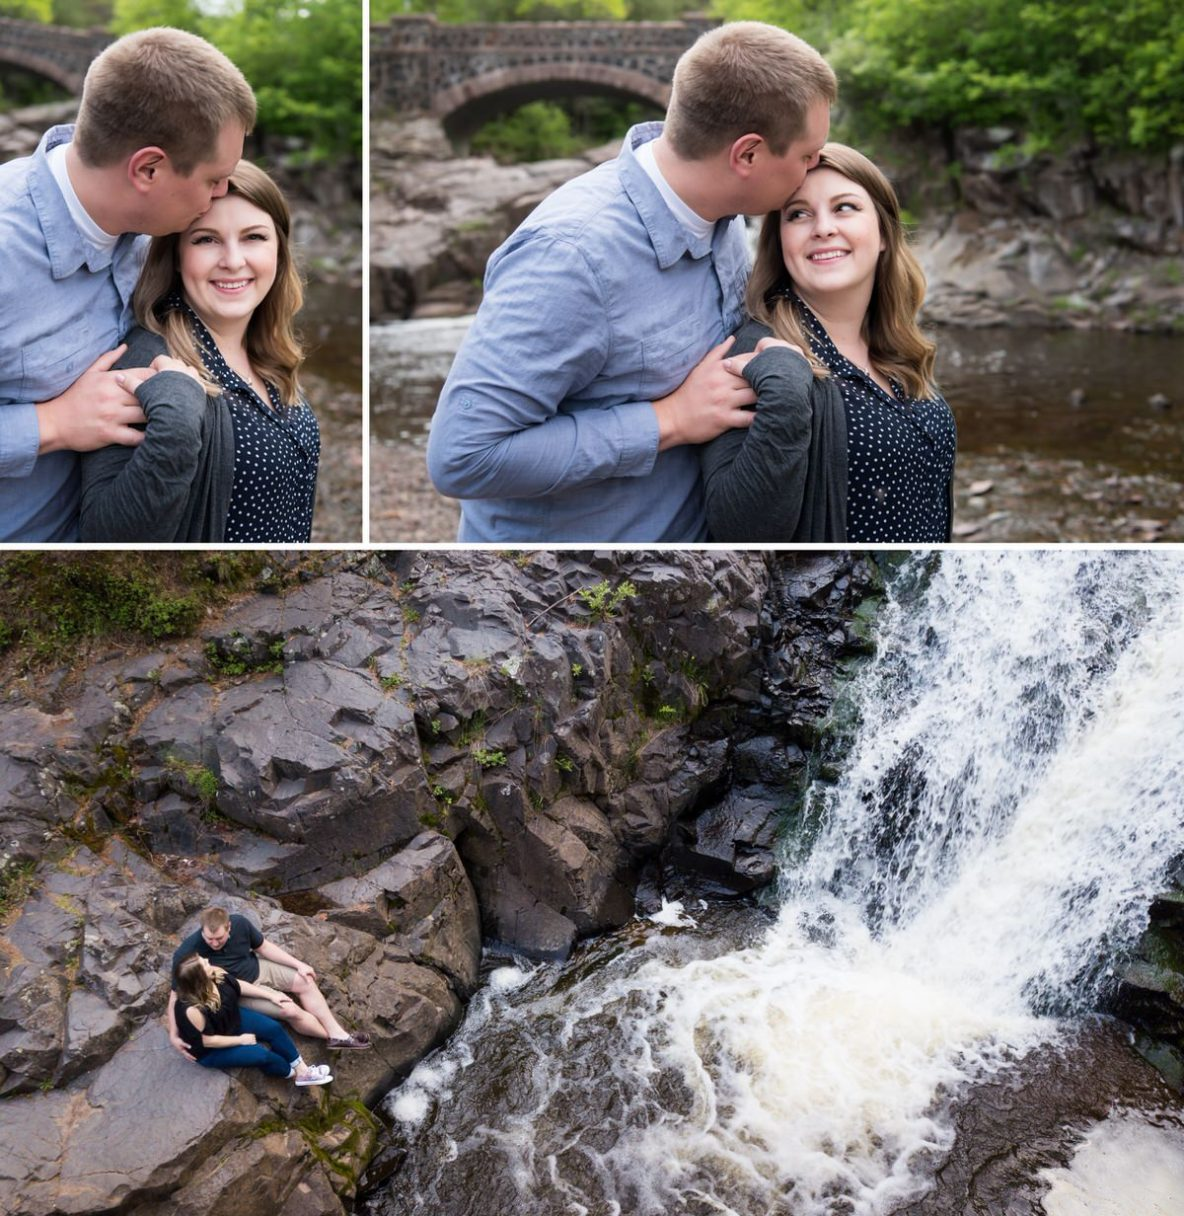 Photos of the engaged couple by waterfall.